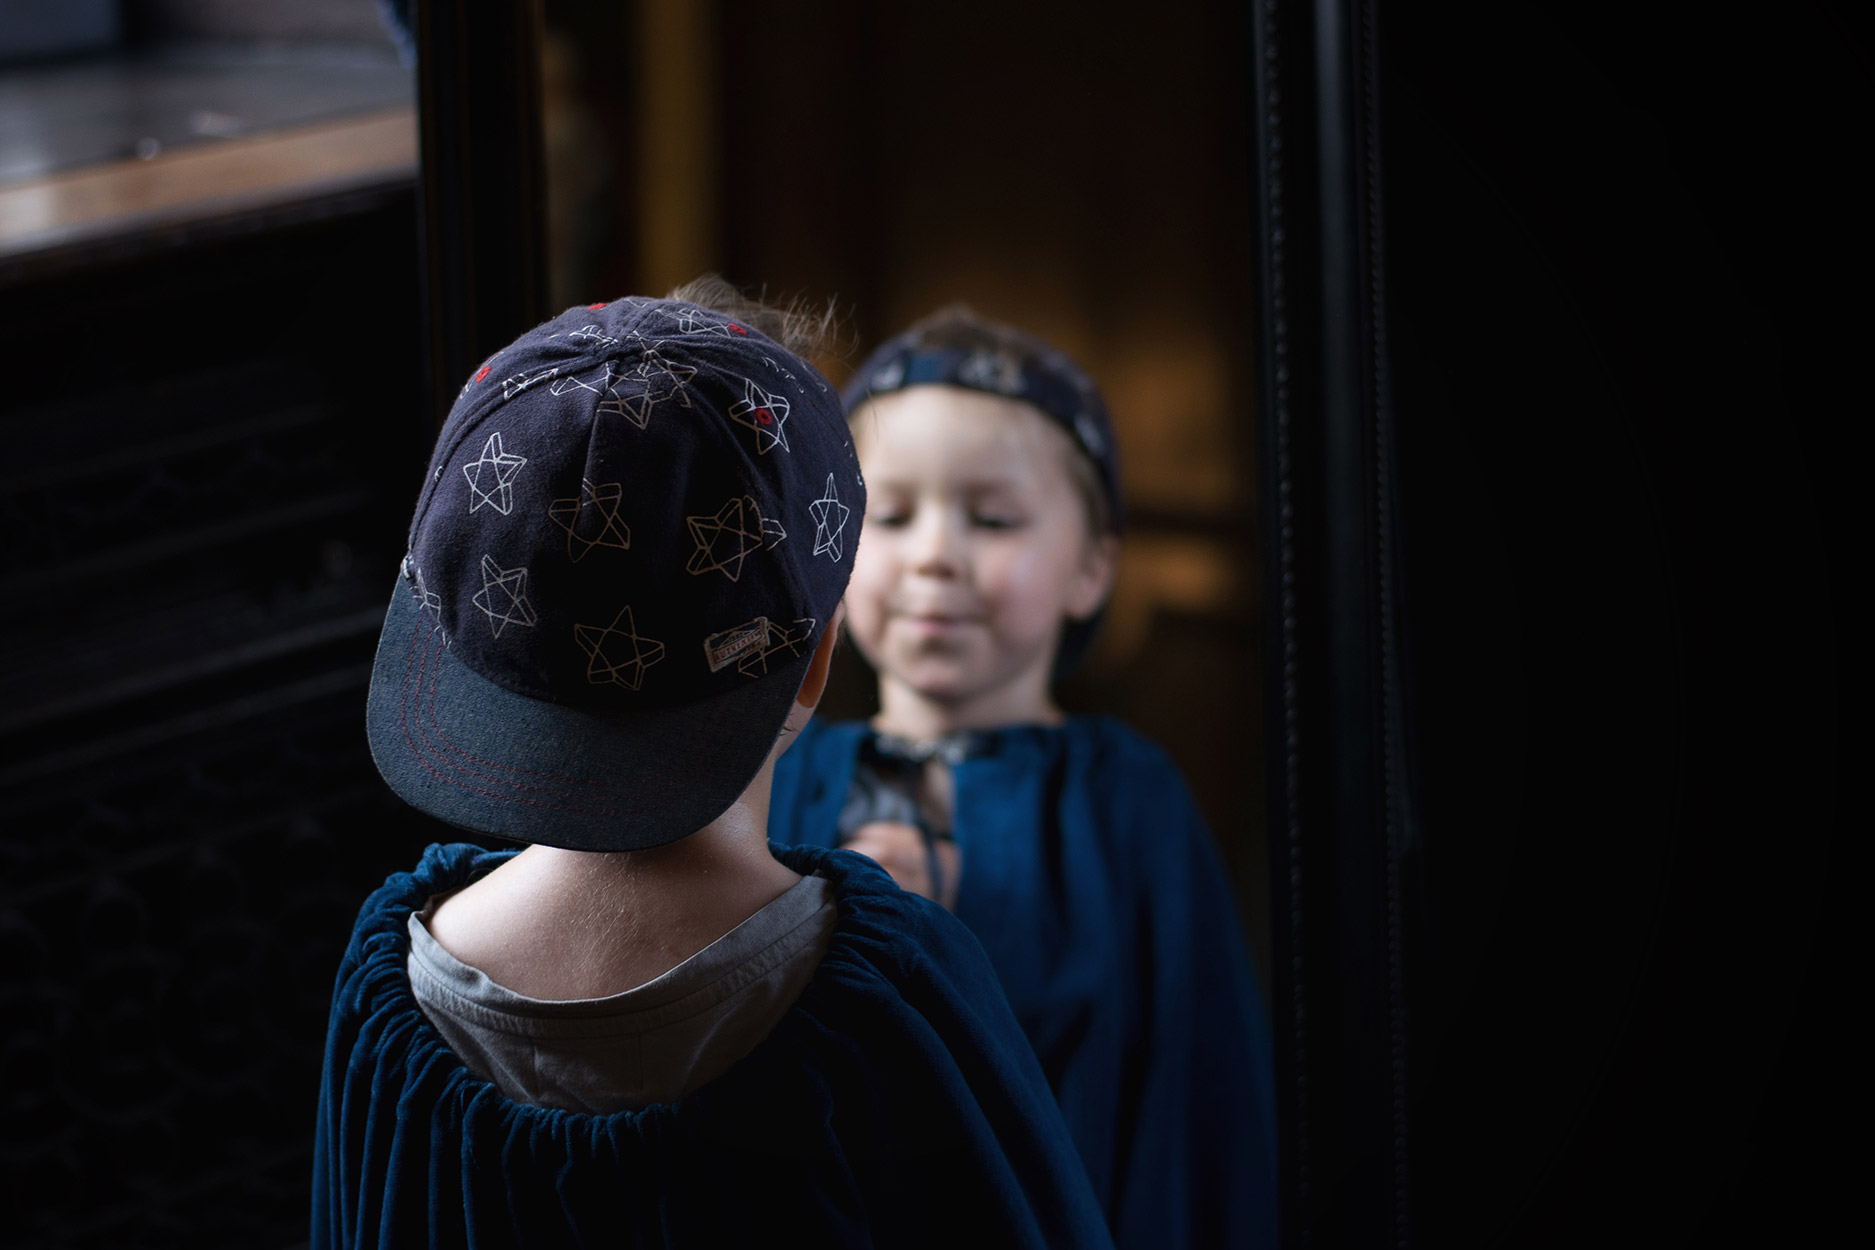 Boy dressing up in vintage clothes and cloaks at Tredegar House, National Trust in Newport, Wales